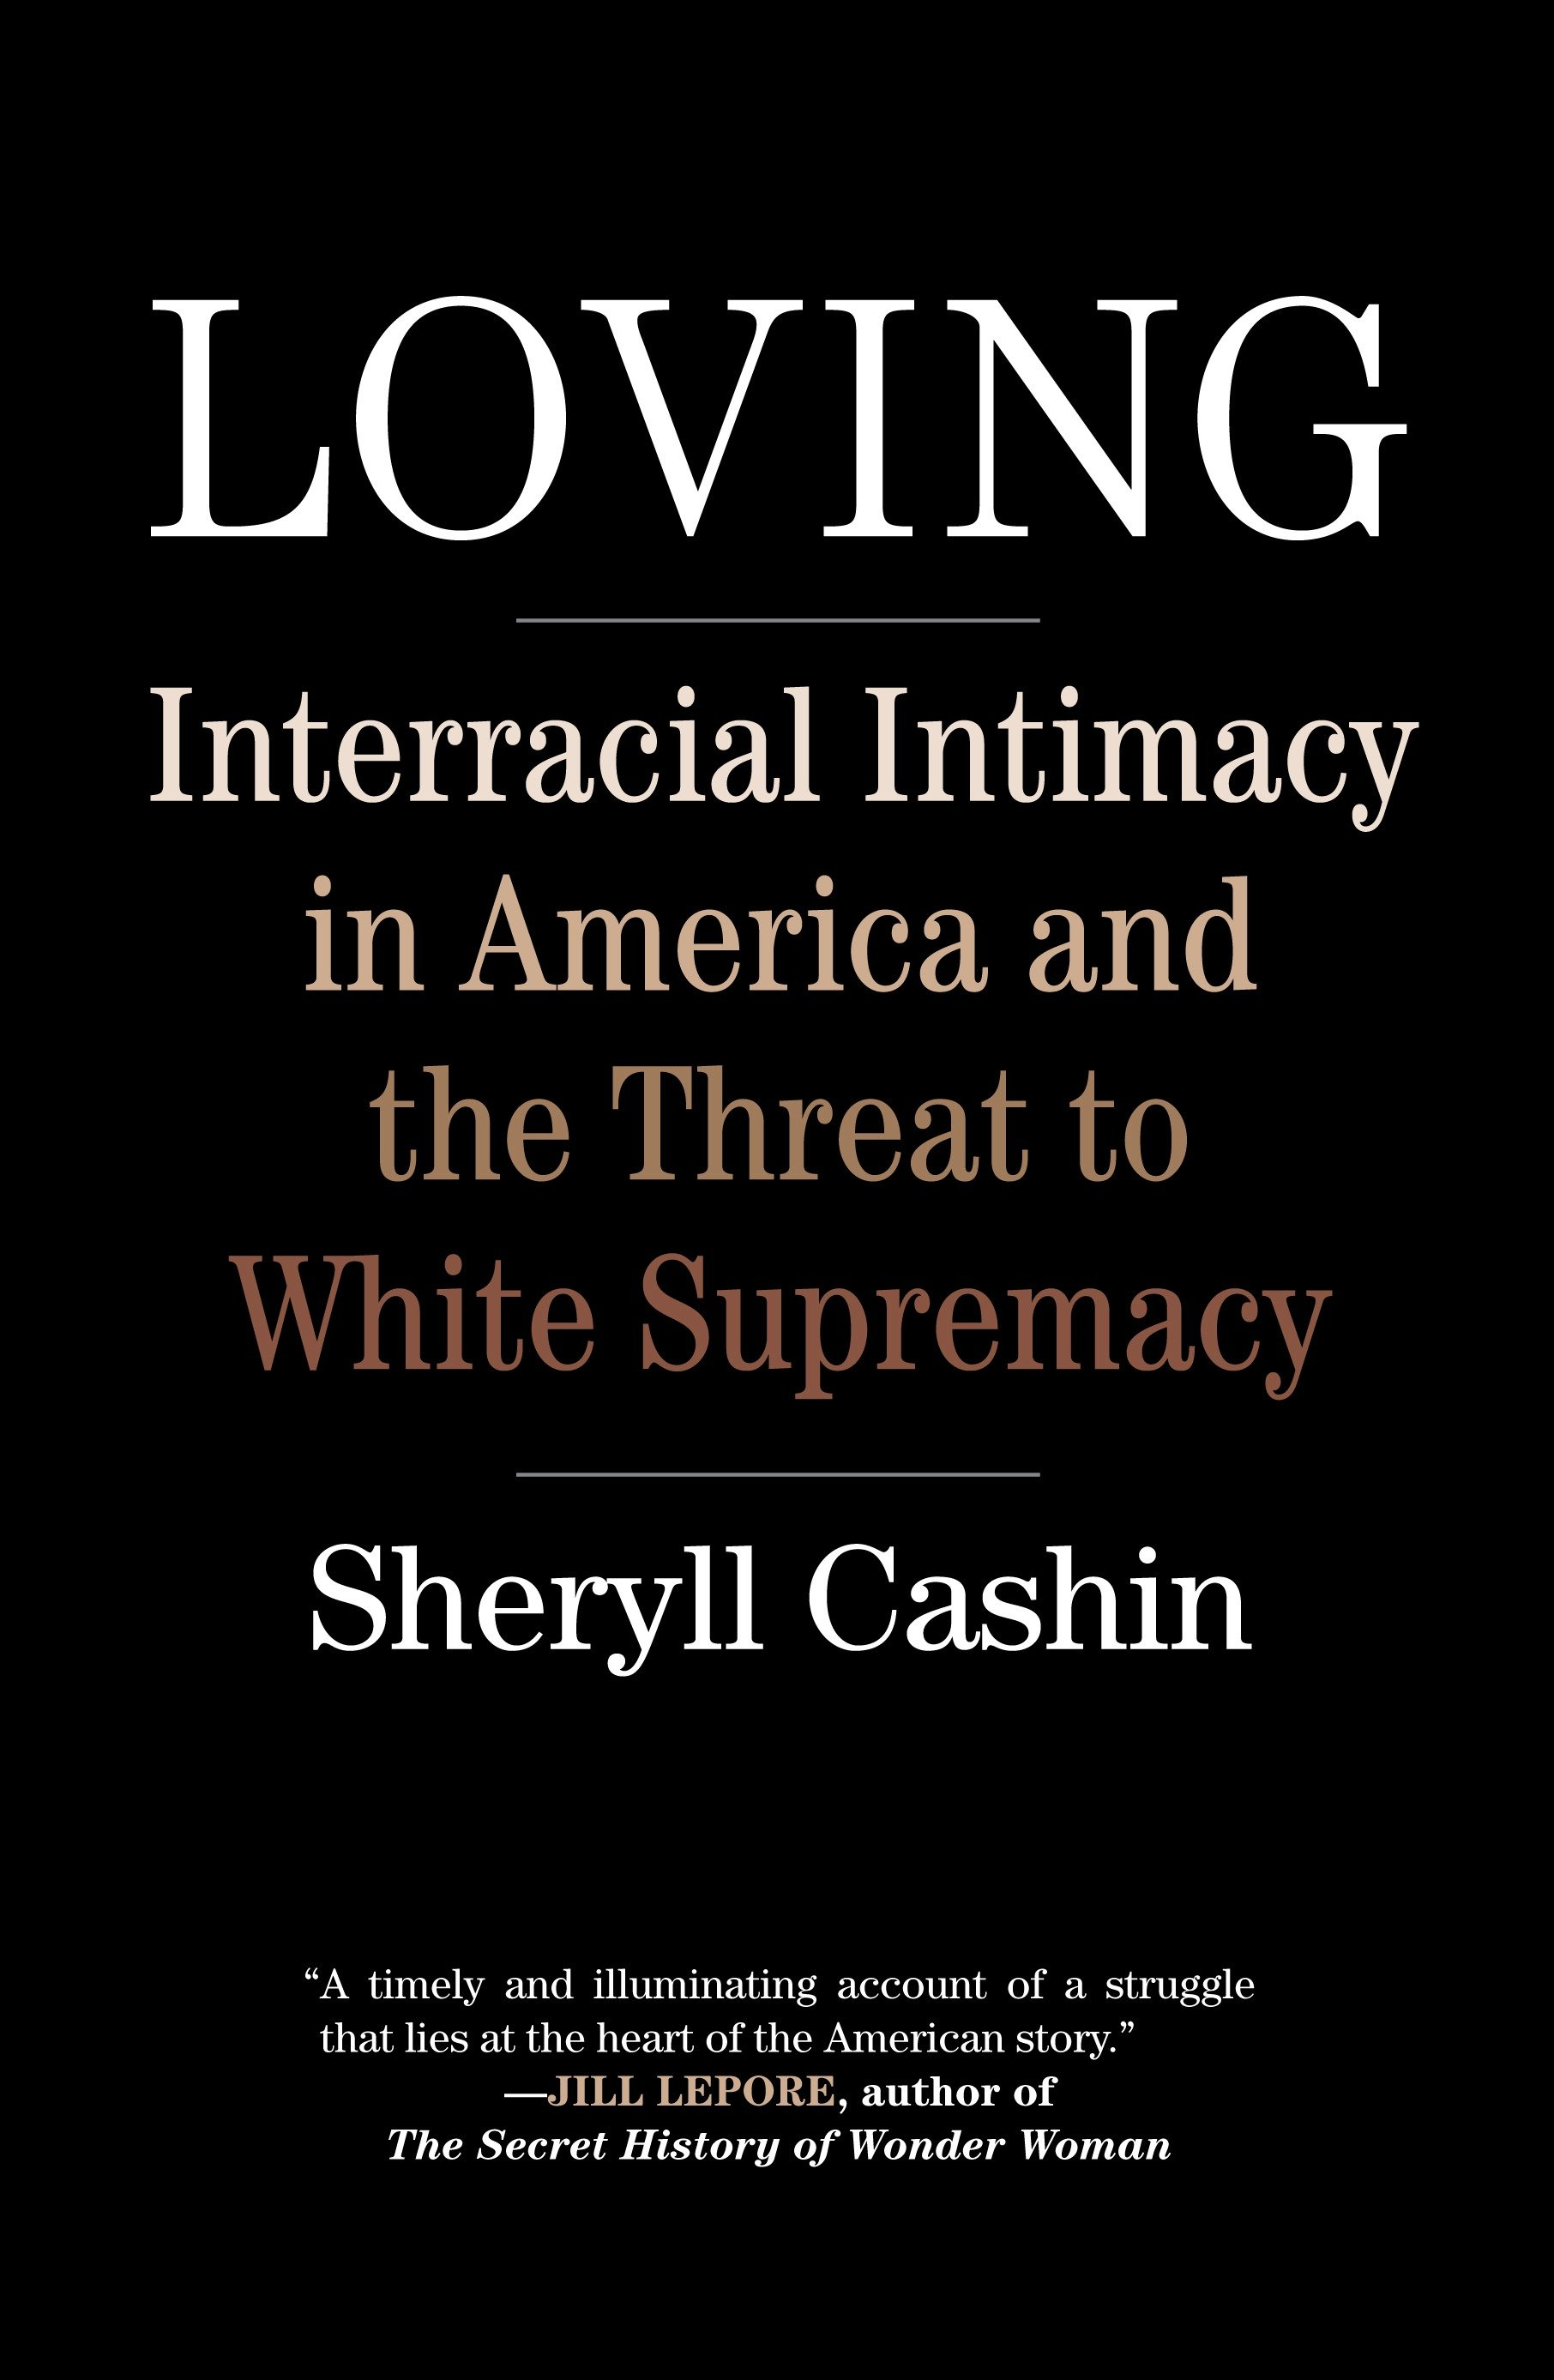 Loving interracial intimacy in America and the threat to white supremacy cover image